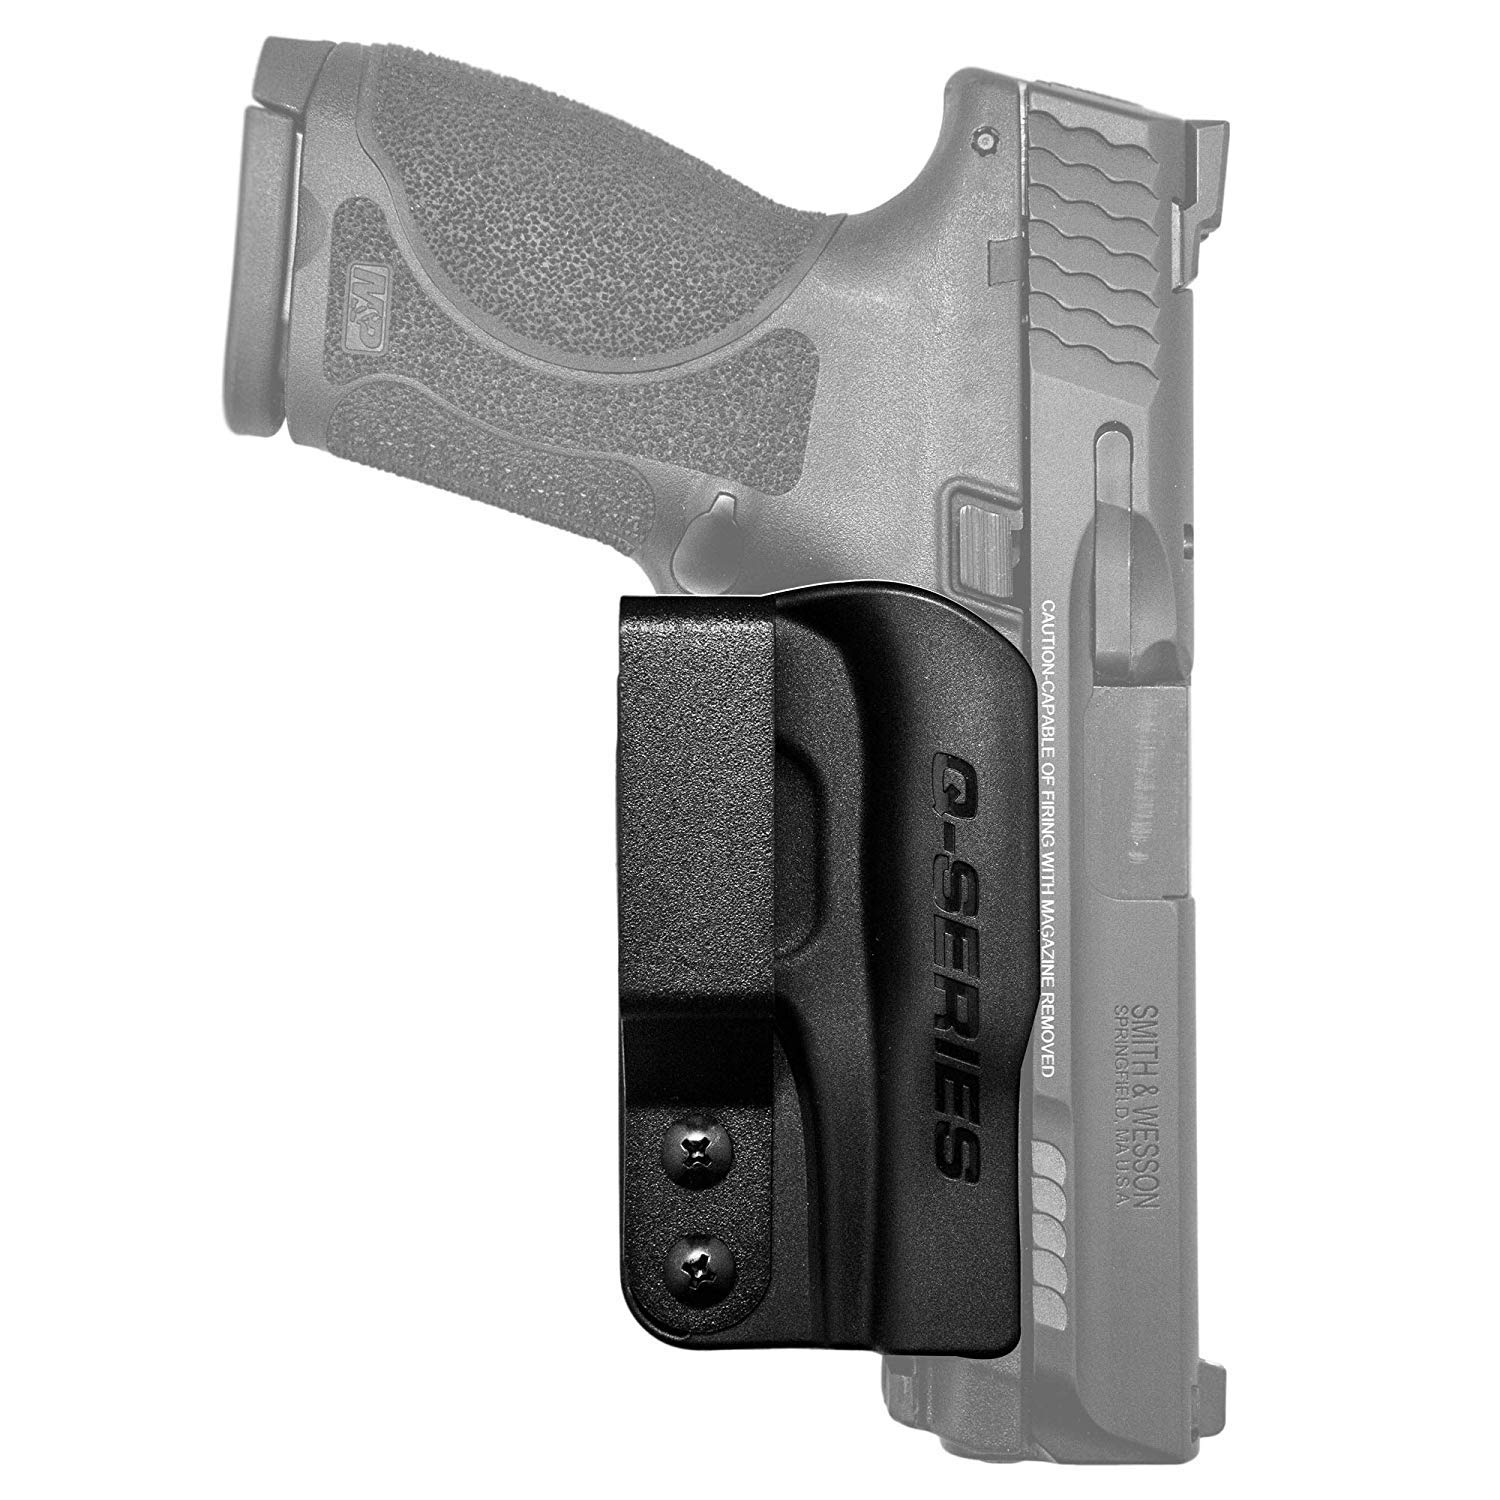 Q-Series Stealth Gun Holsters - Minimalist Concealed Carry Holster for Pistols